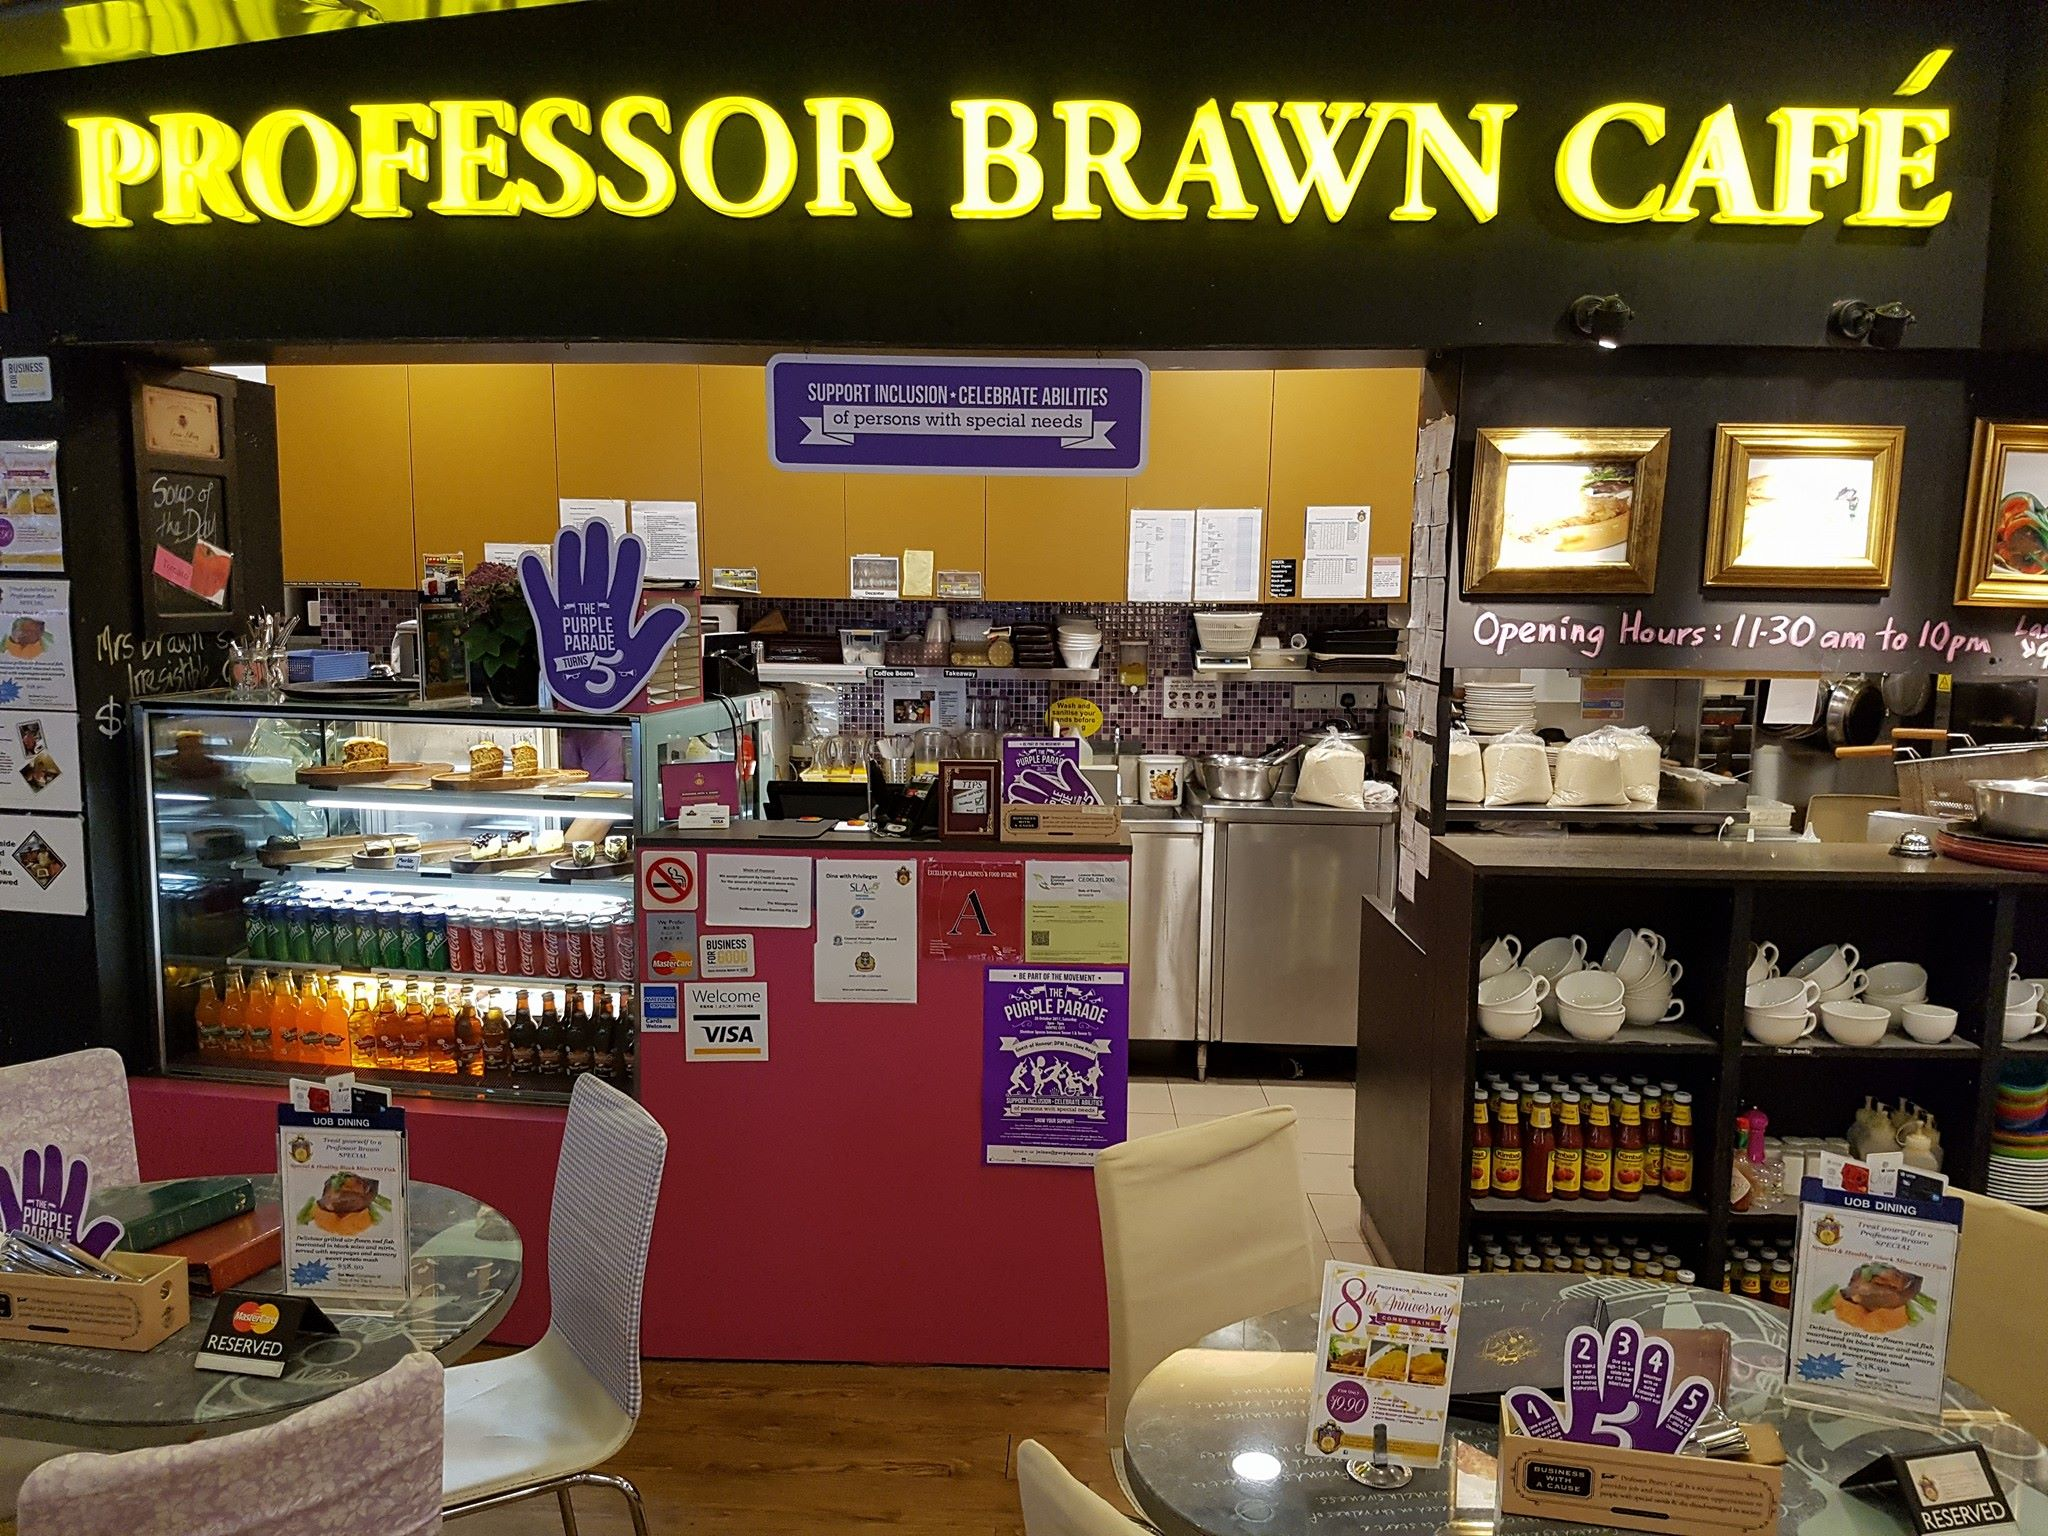 Professor Brawn serves up affordable comfort food in an inclusive setting.